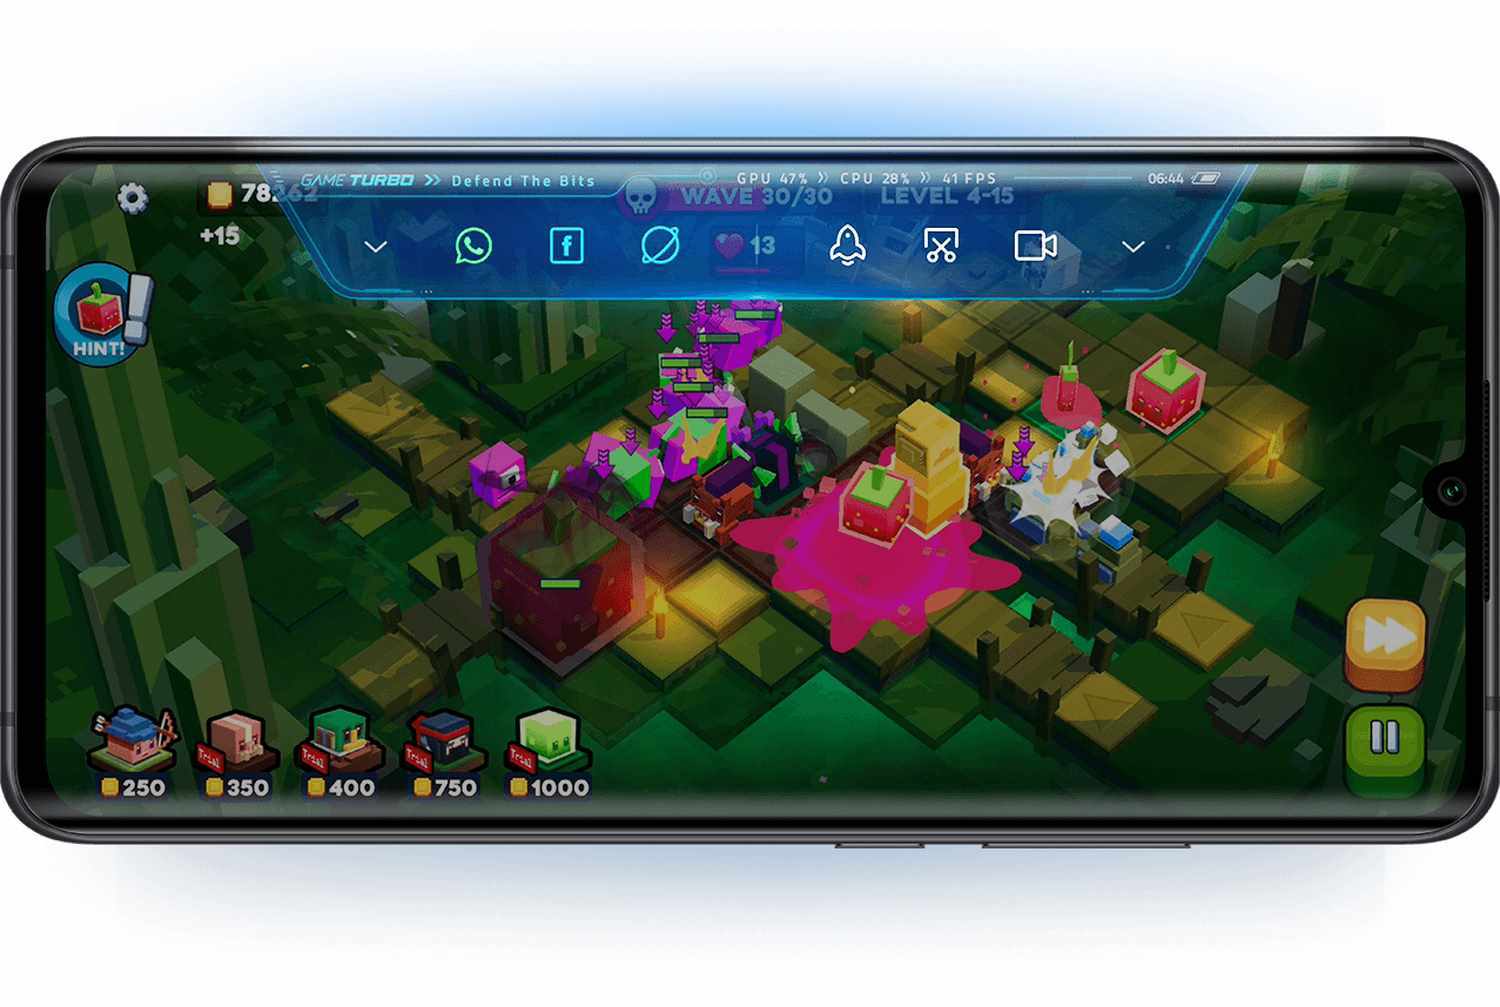 XIAOMI-MI-NOTE-10-LITE-MAIN-BANNER-GAMING-TOOLBOX-2.0-ALEZAY